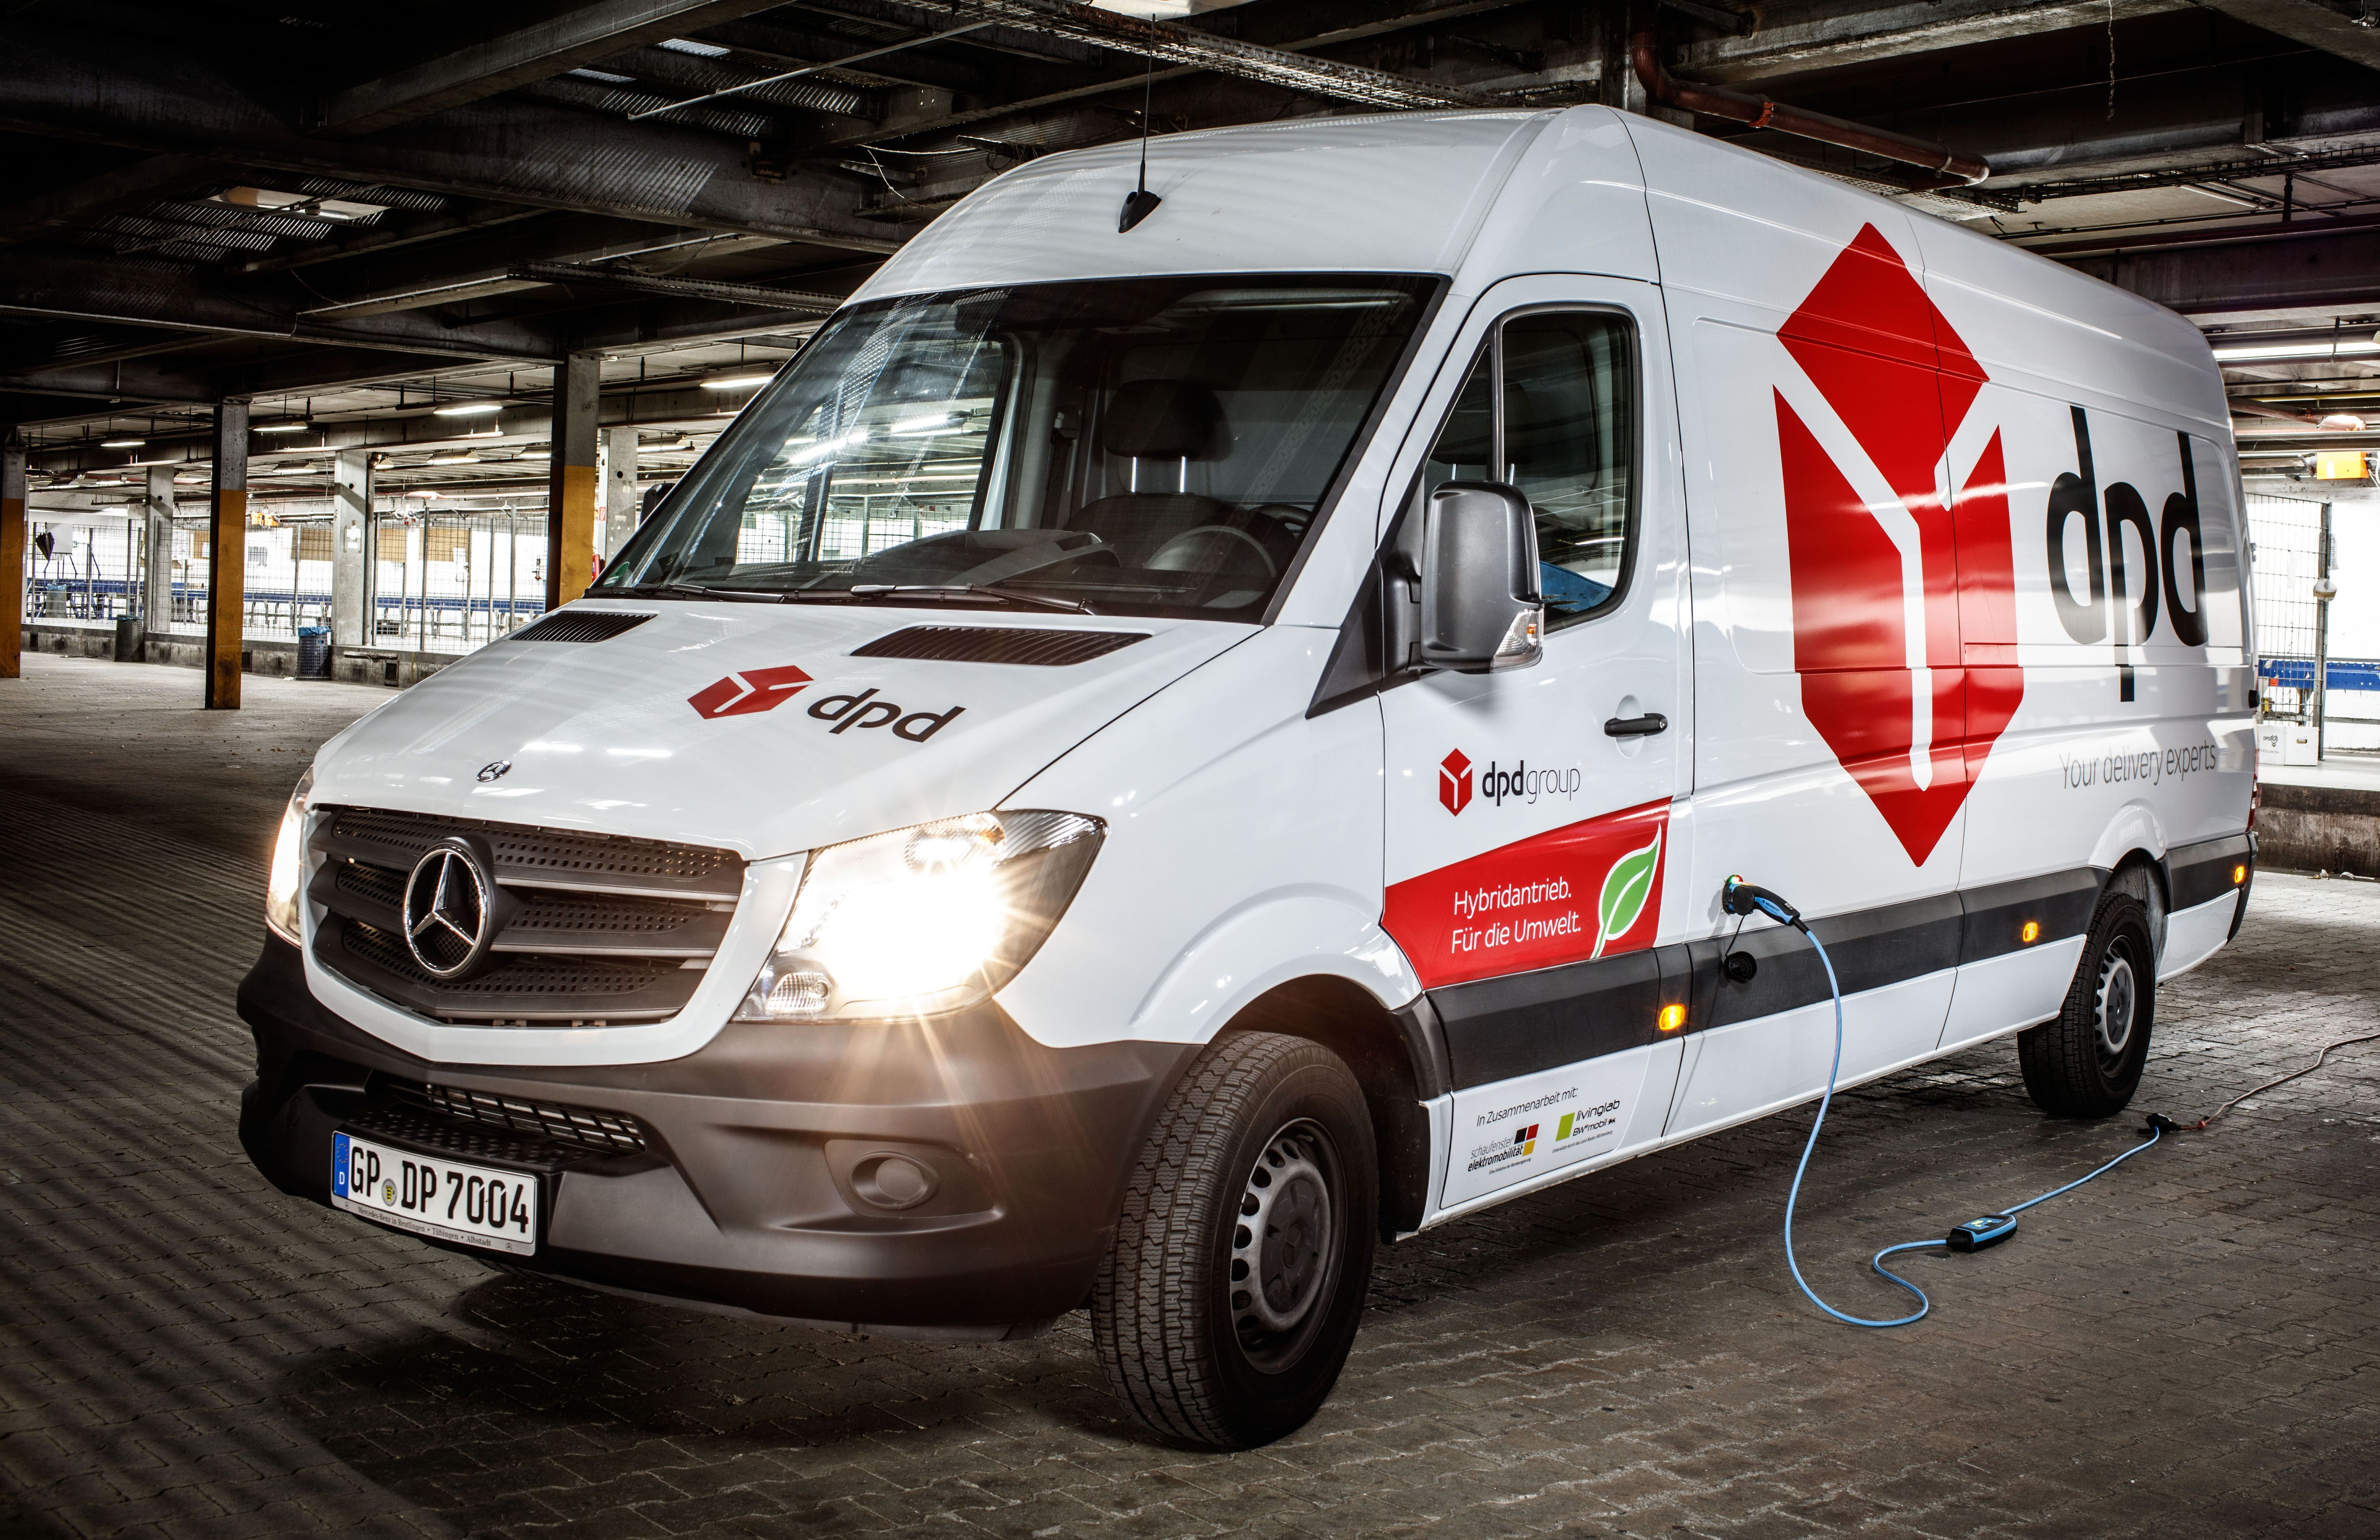 Dpd Mercedes Benz Sprinter Hybrid Parcel Delivery Vehicle